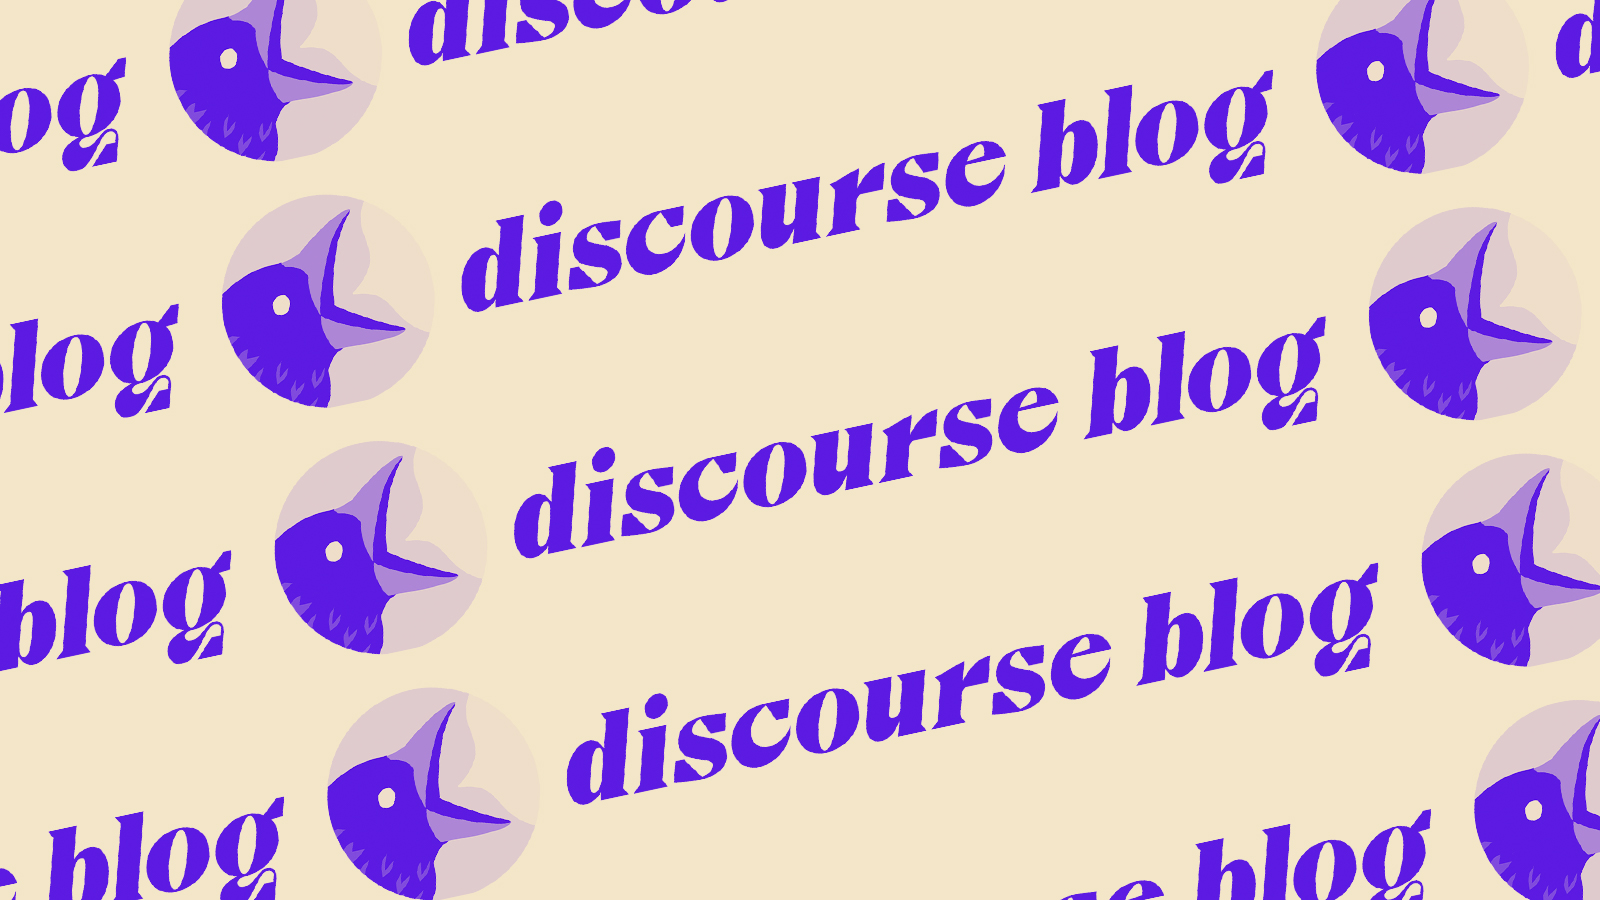 A pattern of the Discourse Blog logo with the bird icon